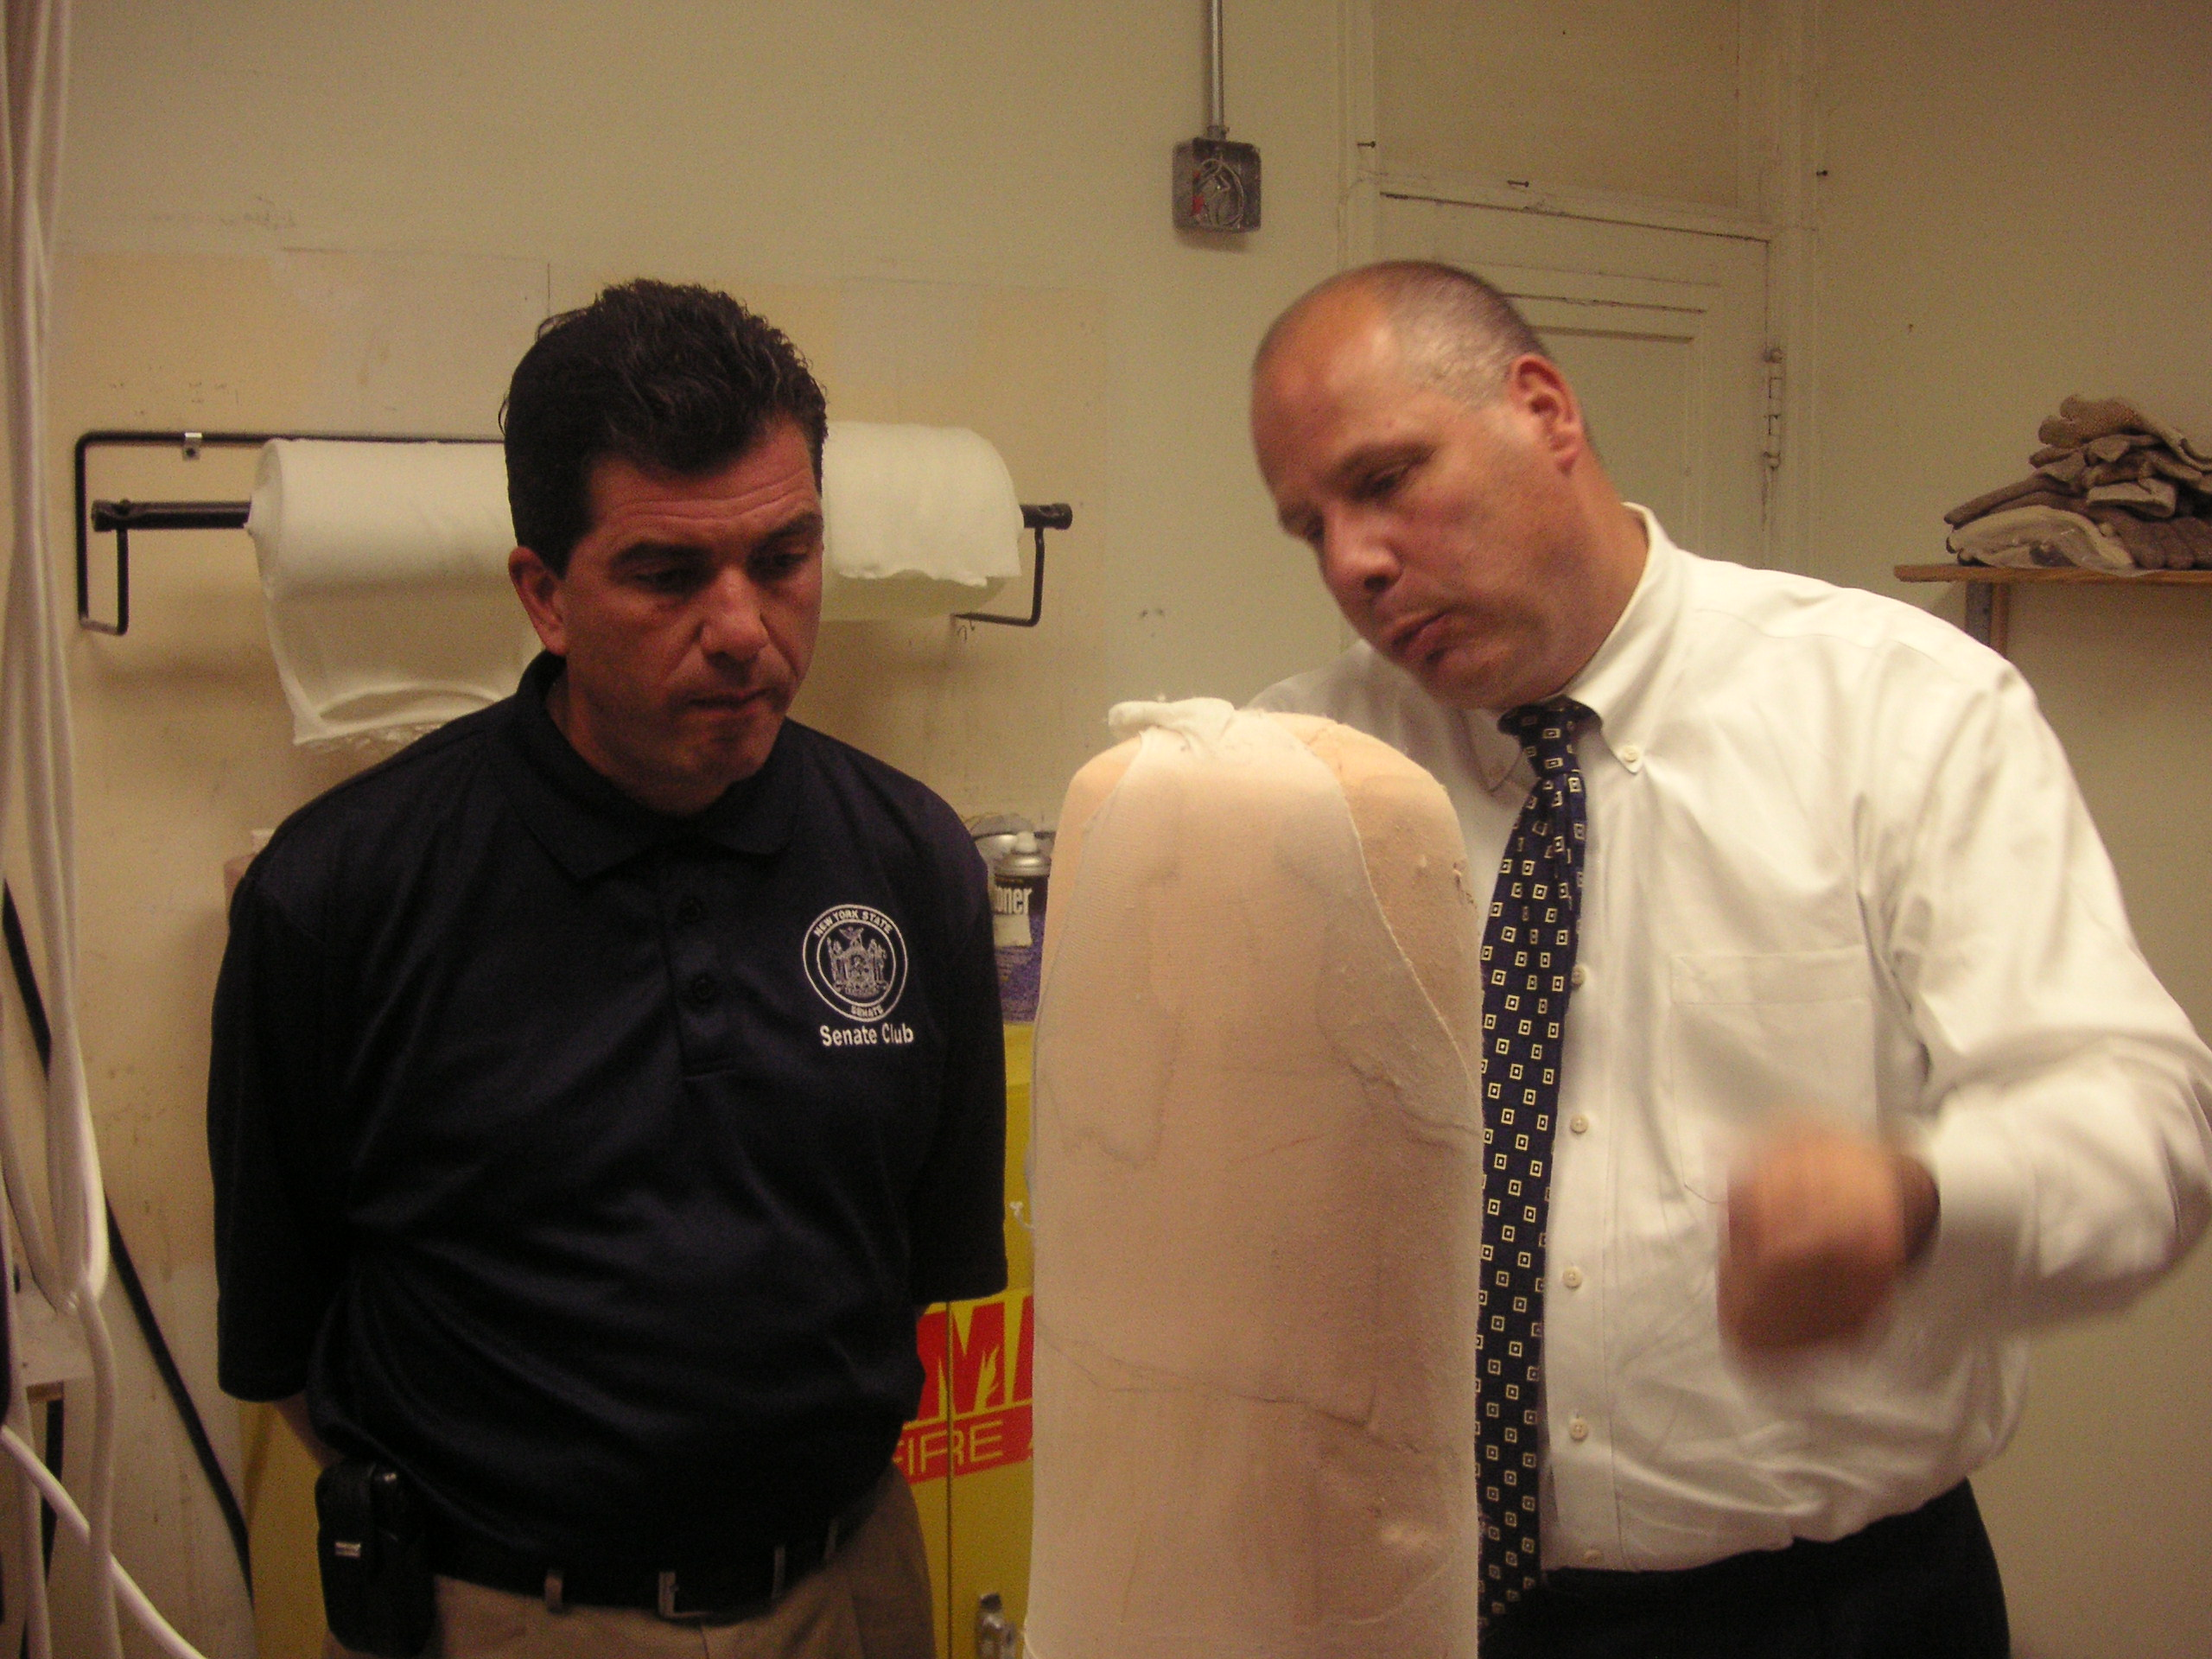 New York Senator Mark Grisanti and East Coast O & P CEO Vincent A. Benenati, CO